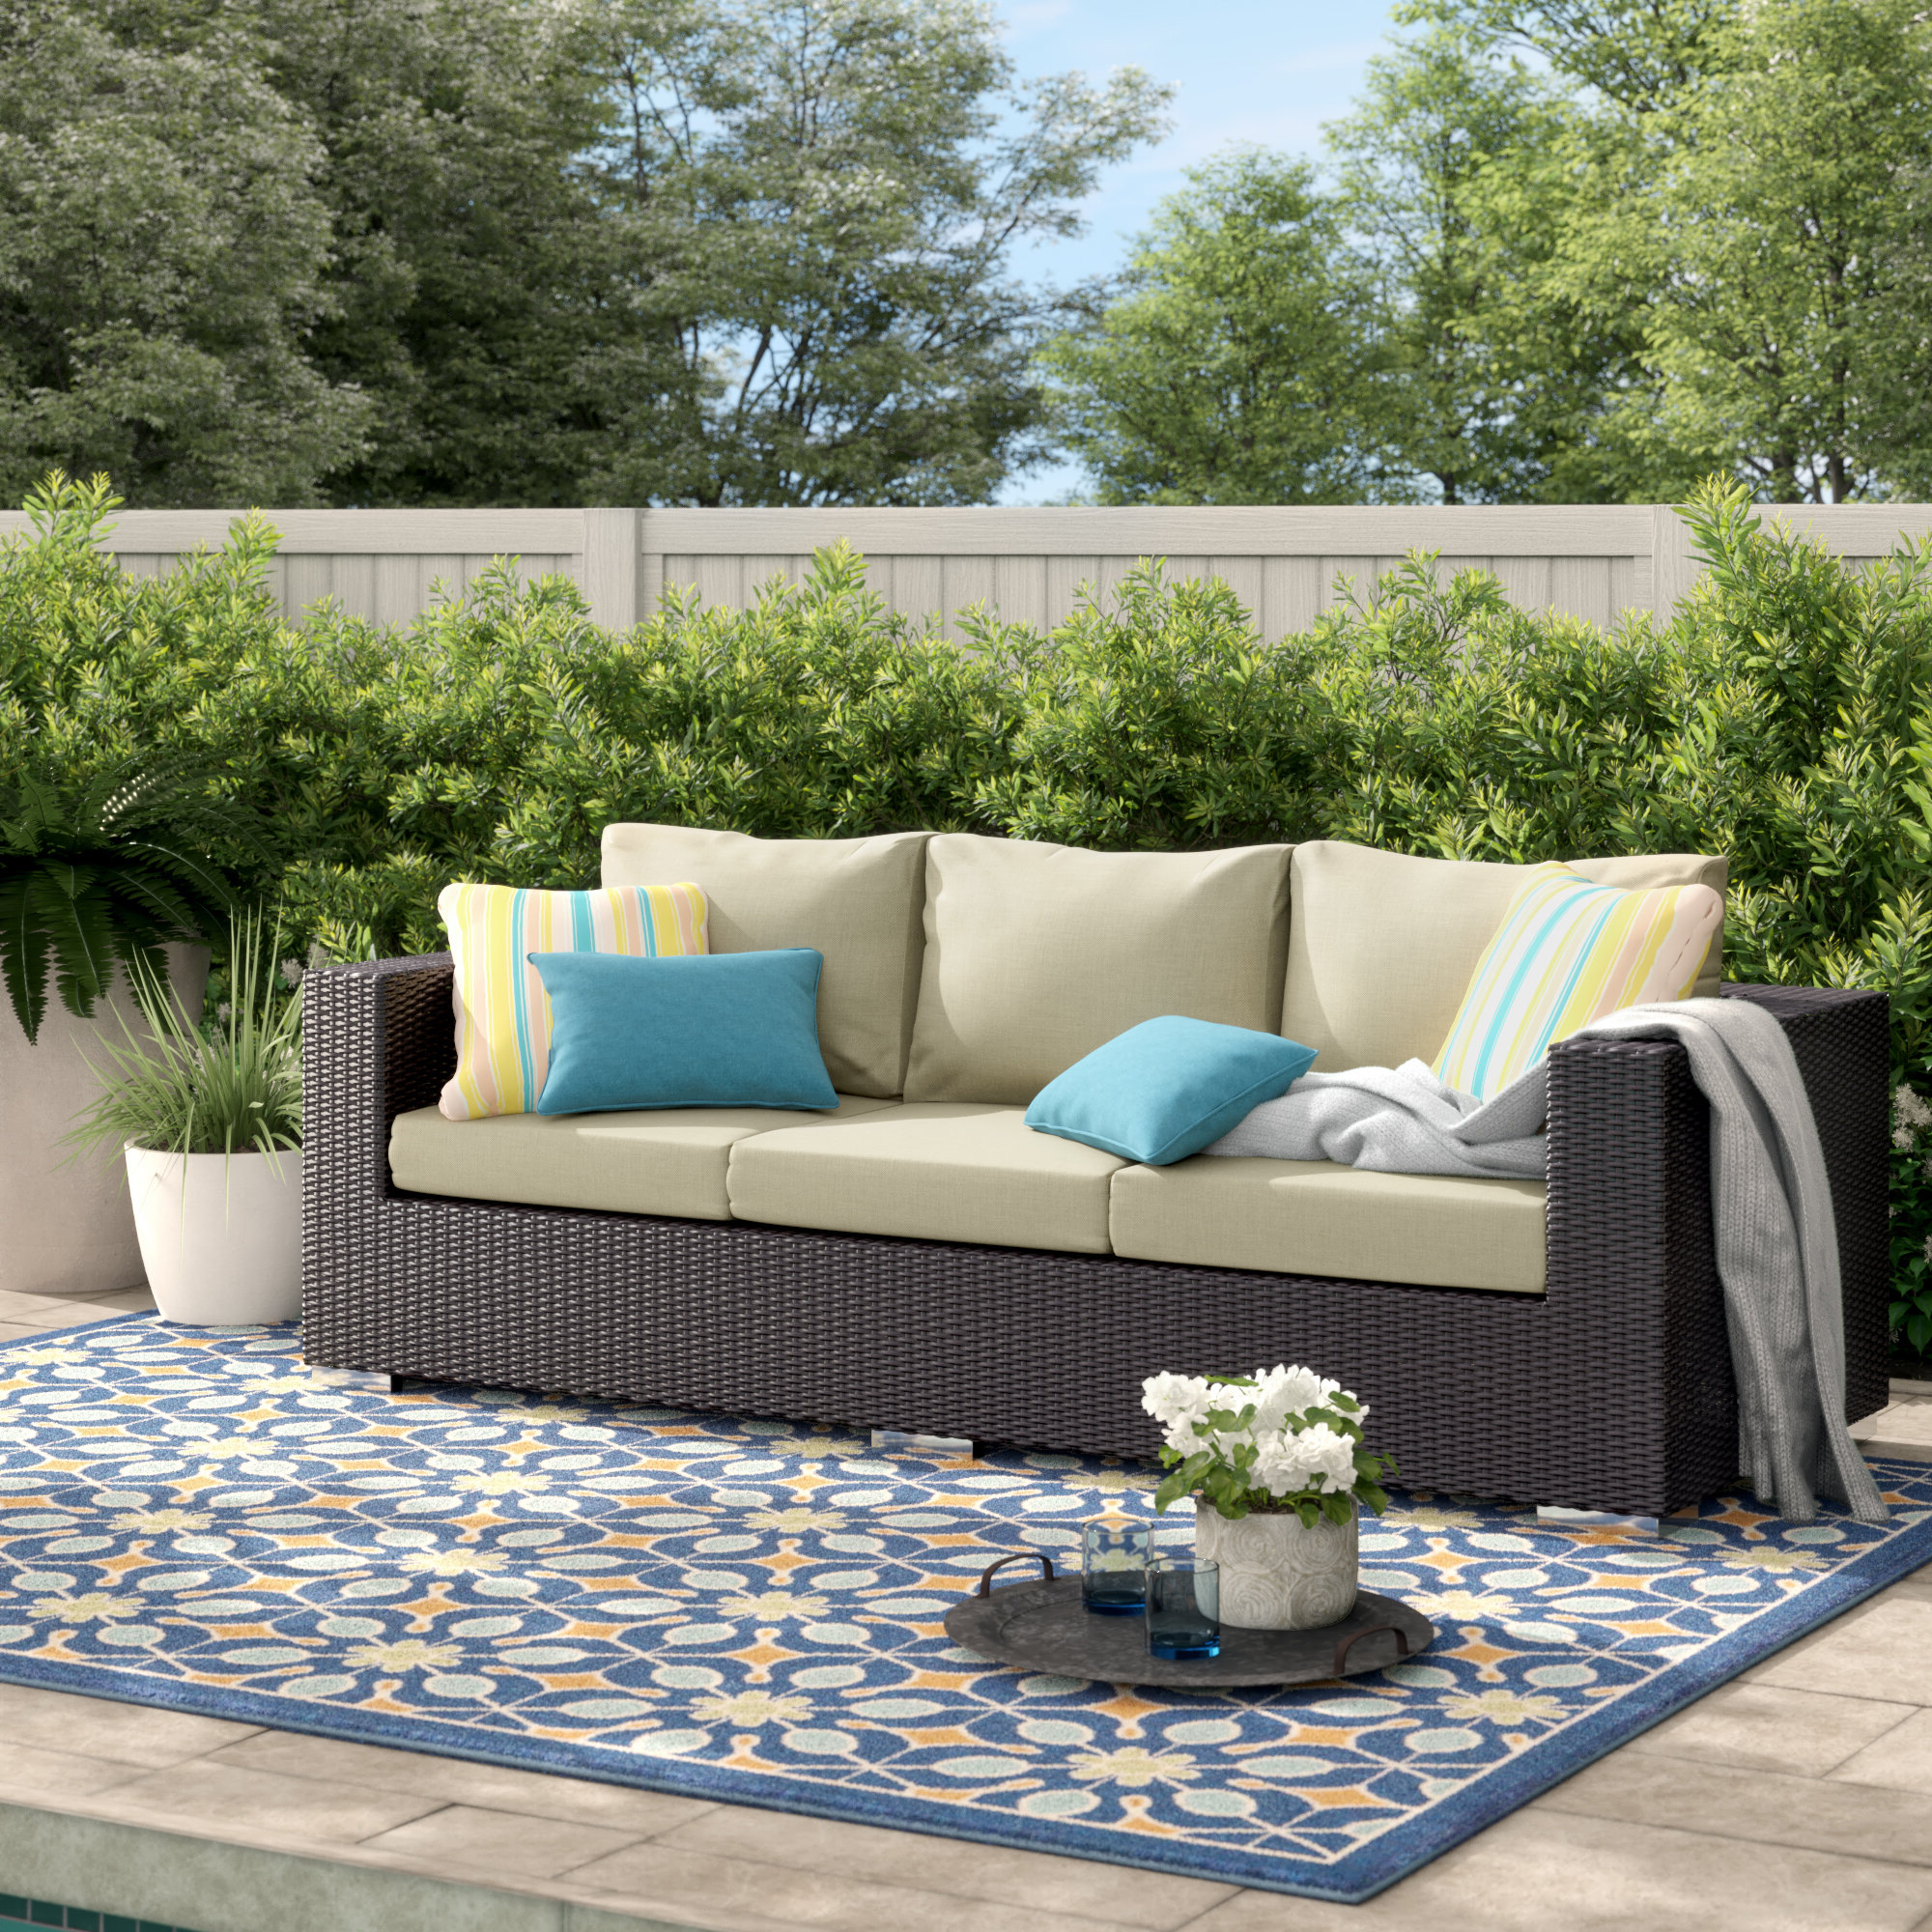 Mcmanis Patio Sofas With Cushion With 2020 Brentwood Patio Sofa With Cushions (View 14 of 20)